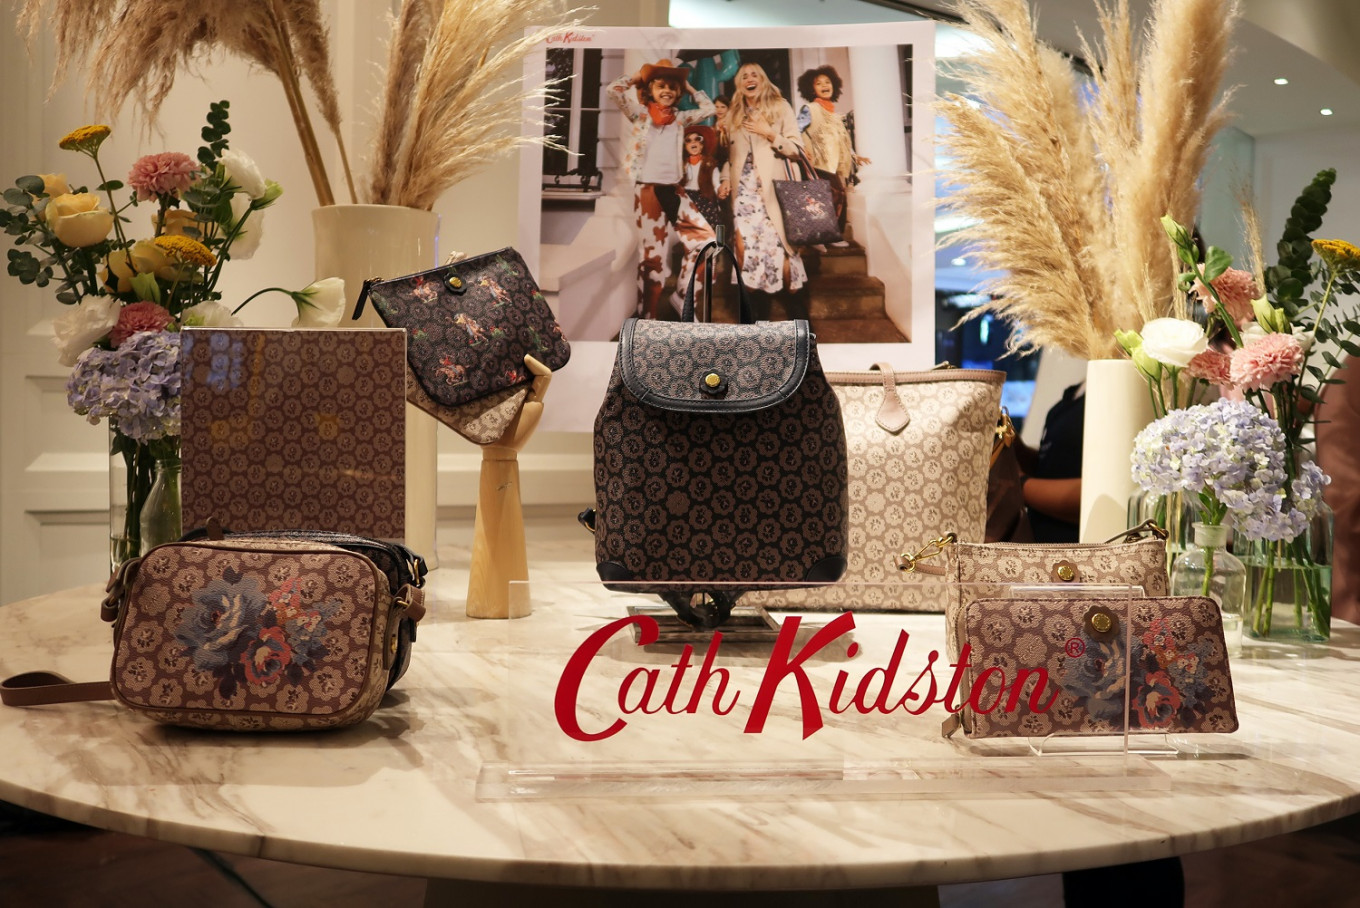 Cath Kidston's premium collection boasts more versatile styles